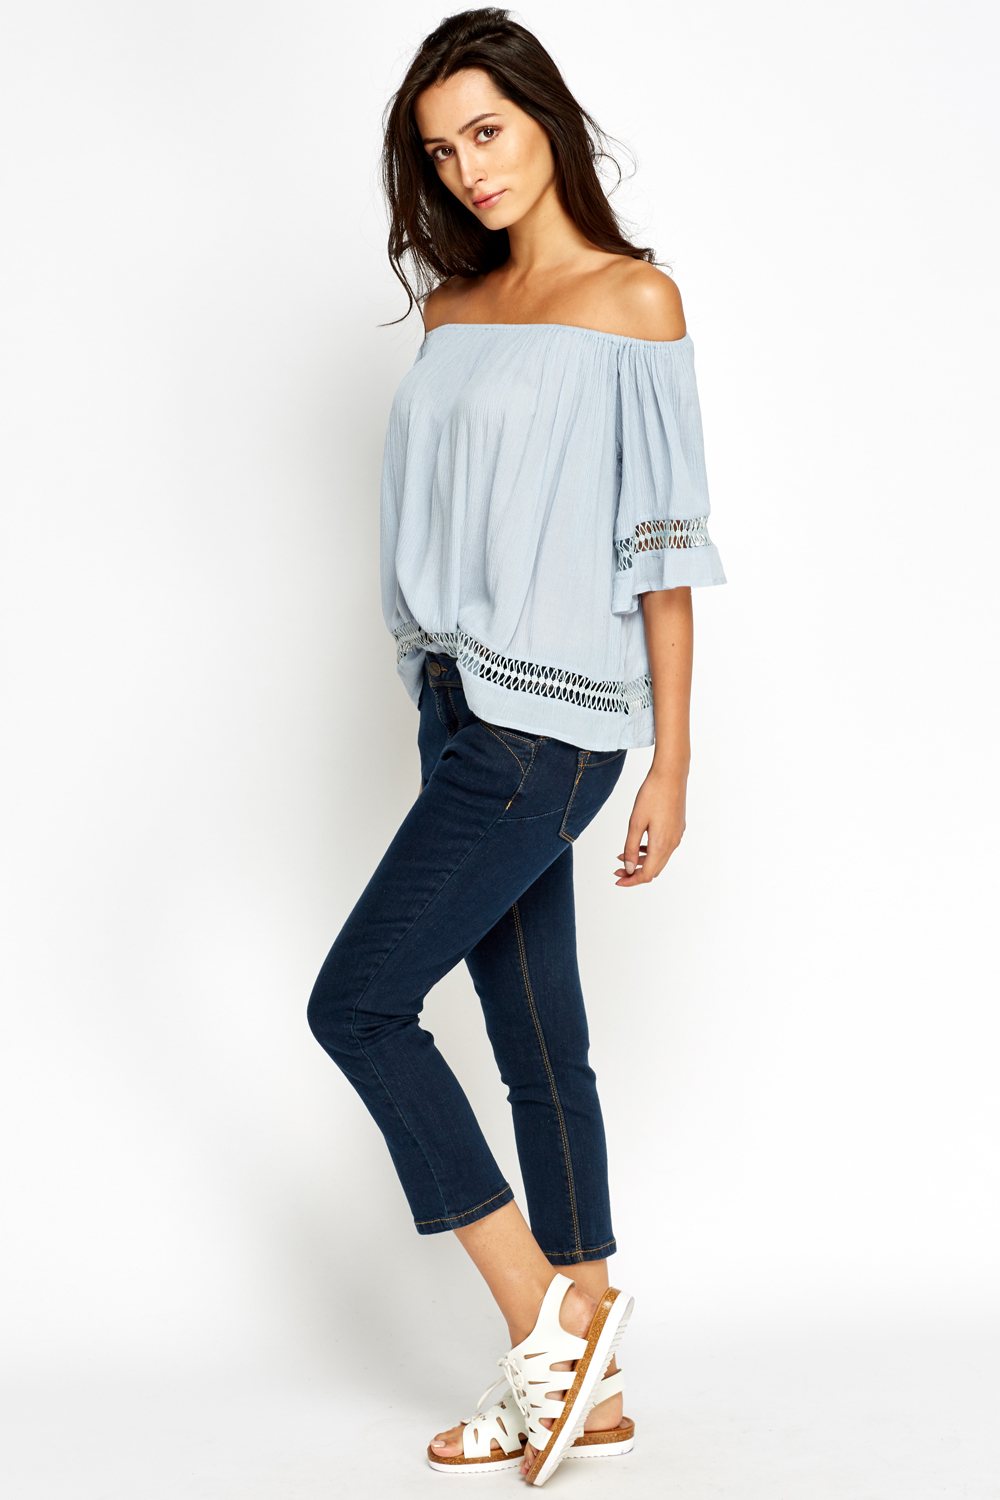 Cropped High Waisted Jeans - Just £5